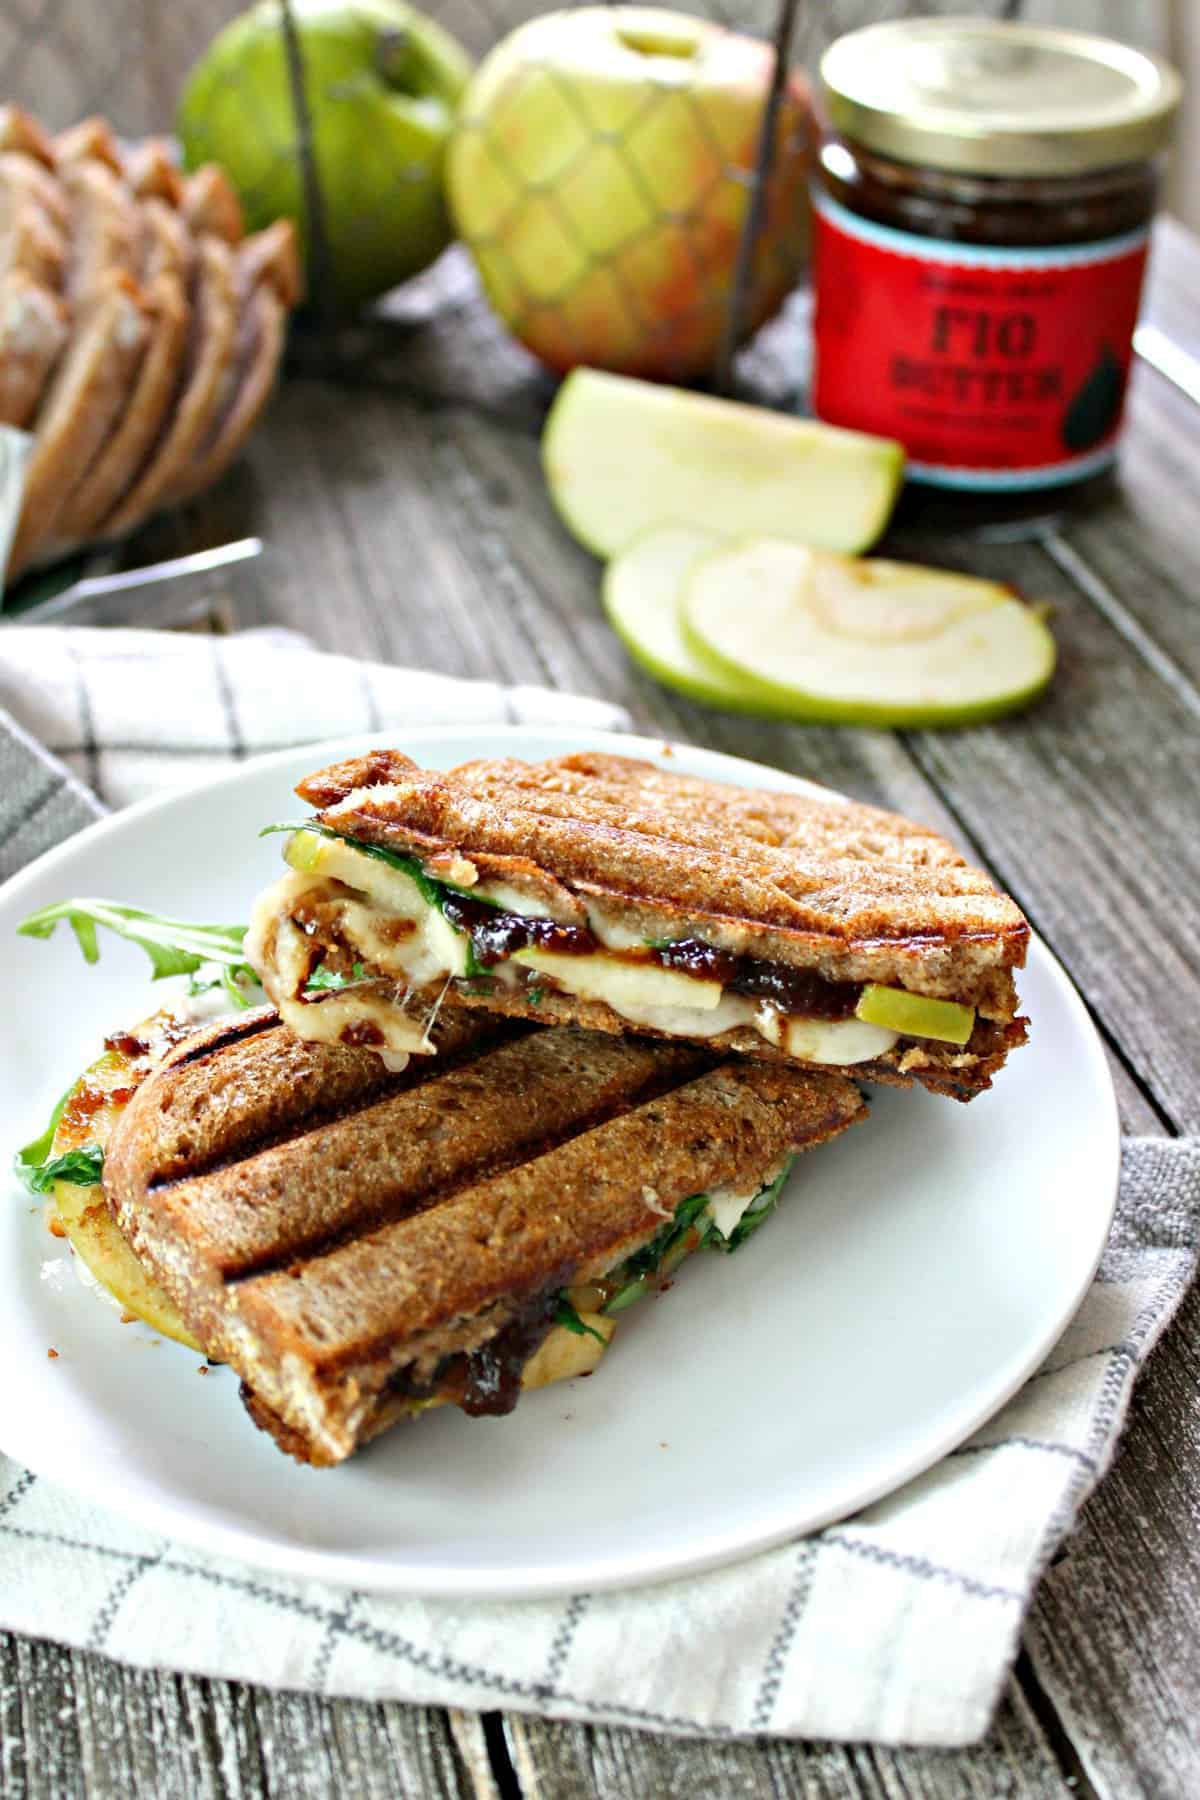 Manchego, Fig & Apple Panini! Even quick and easy lunches can be seasonal and flavorful; the proof is in this panini! Crusty bread is slathered with fig preserves, then topped with manchego cheese & tart apple slices and grilled to melty perfection!